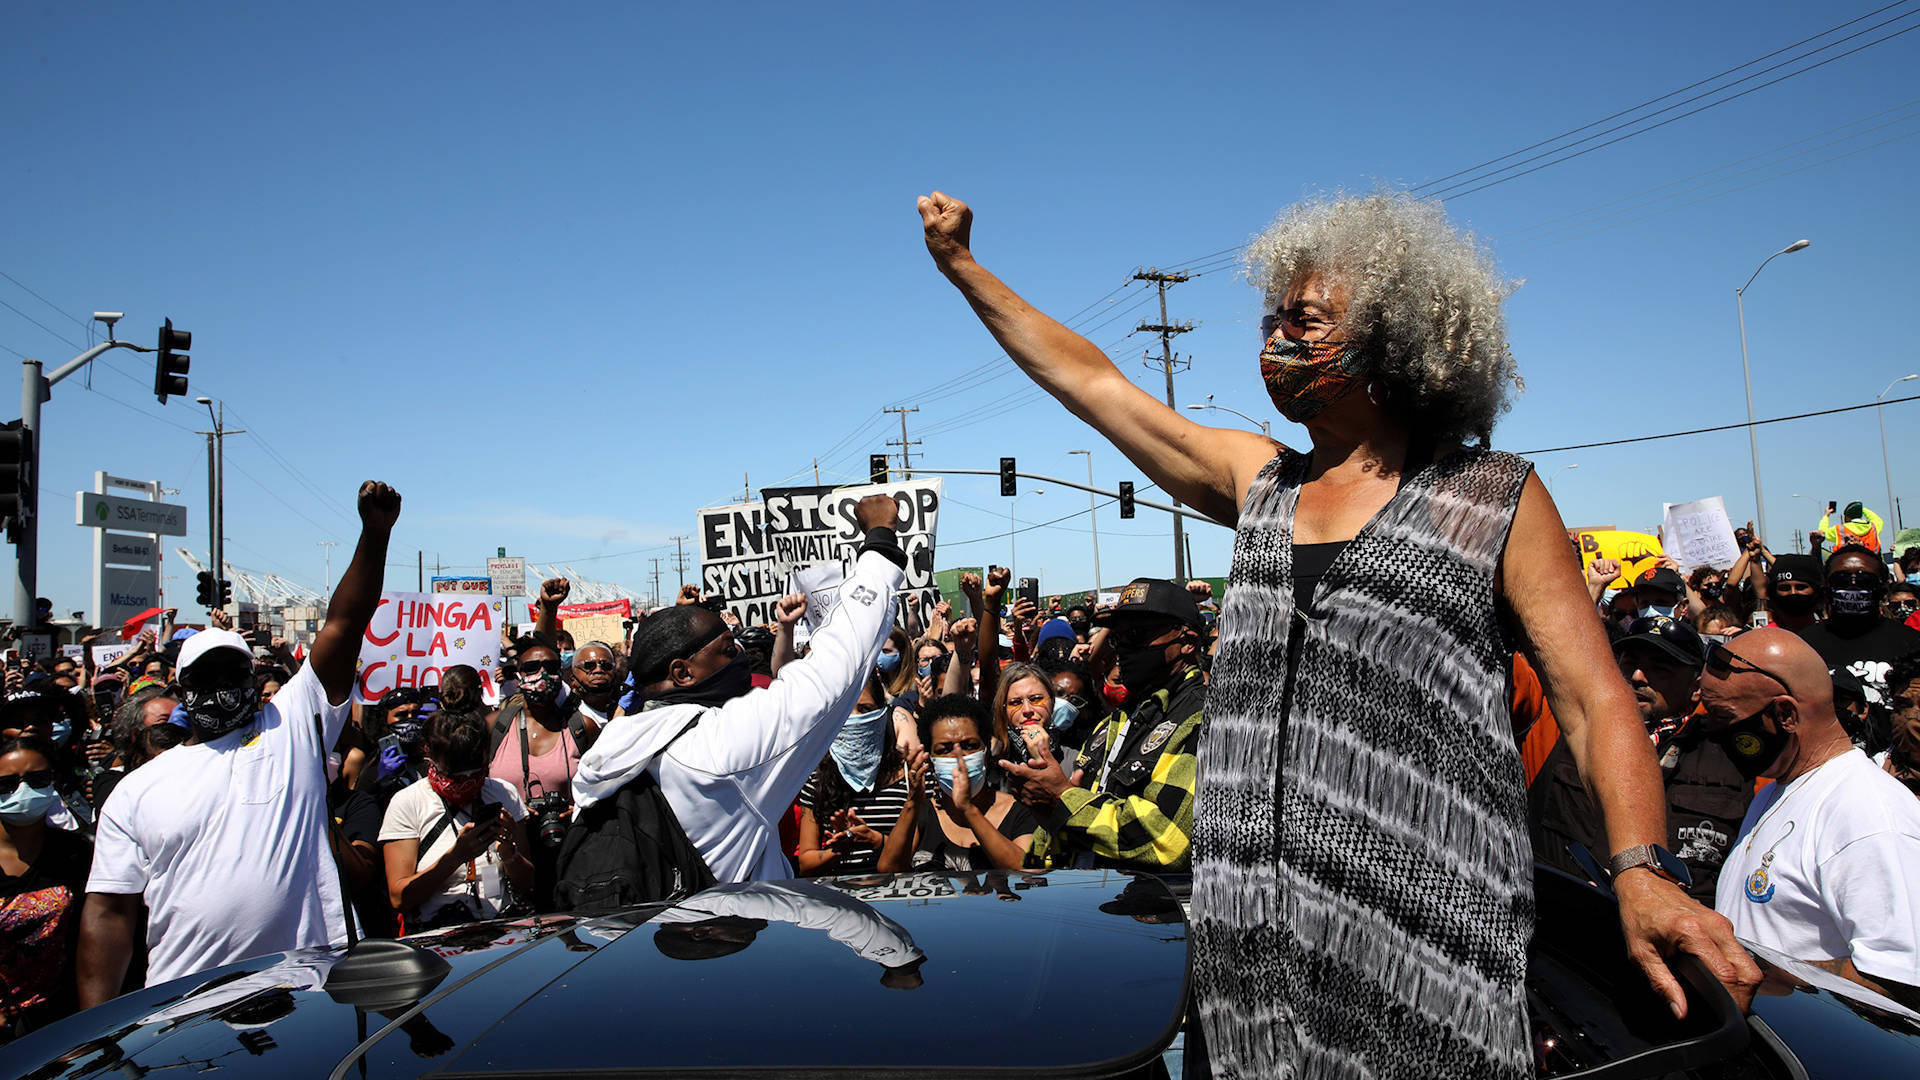 Read more about the article The Freedom Struggle in 2020: Angela Davis on Protests, Defunding Police & Toppling Racist Statues